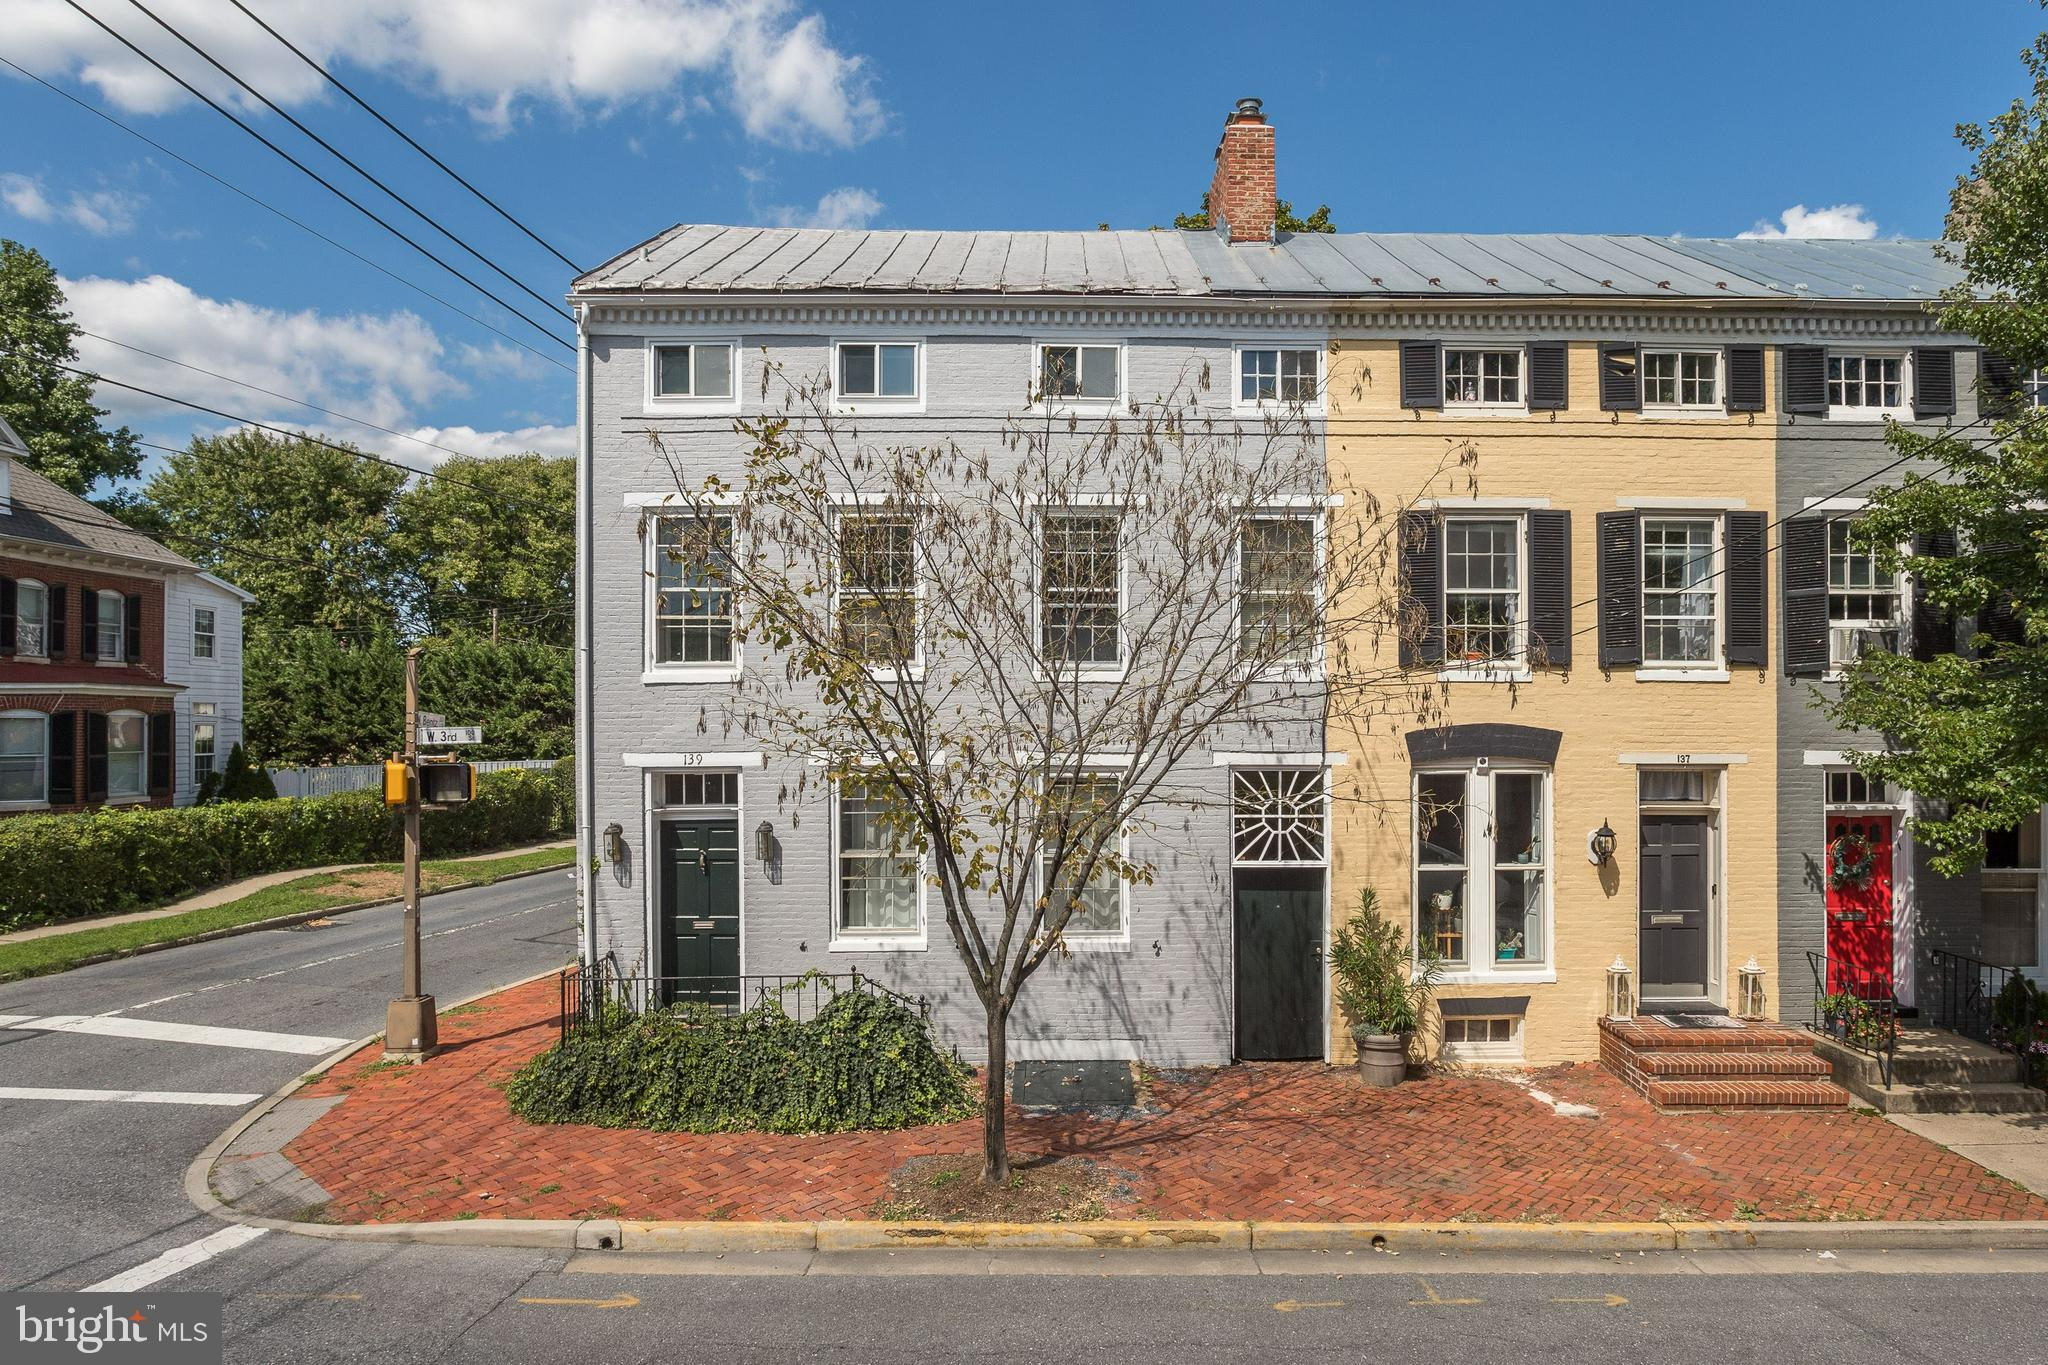 Remarkable 2 unit brick property located in downtown Frederick boasting historic charm and some mode